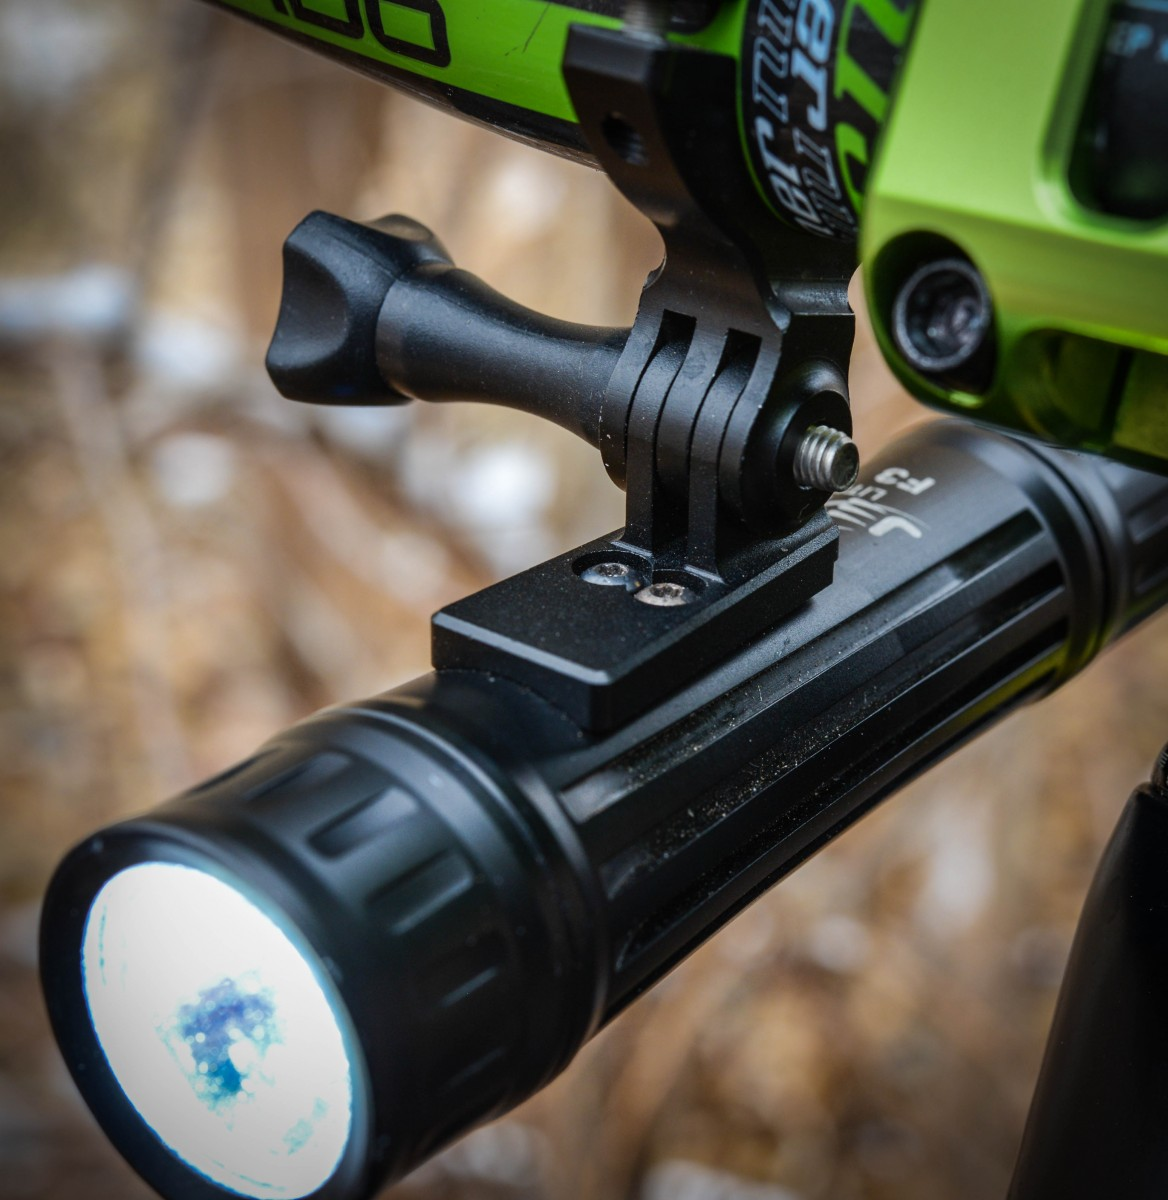 The mount makes it easy to attach and secure this light in seconds.